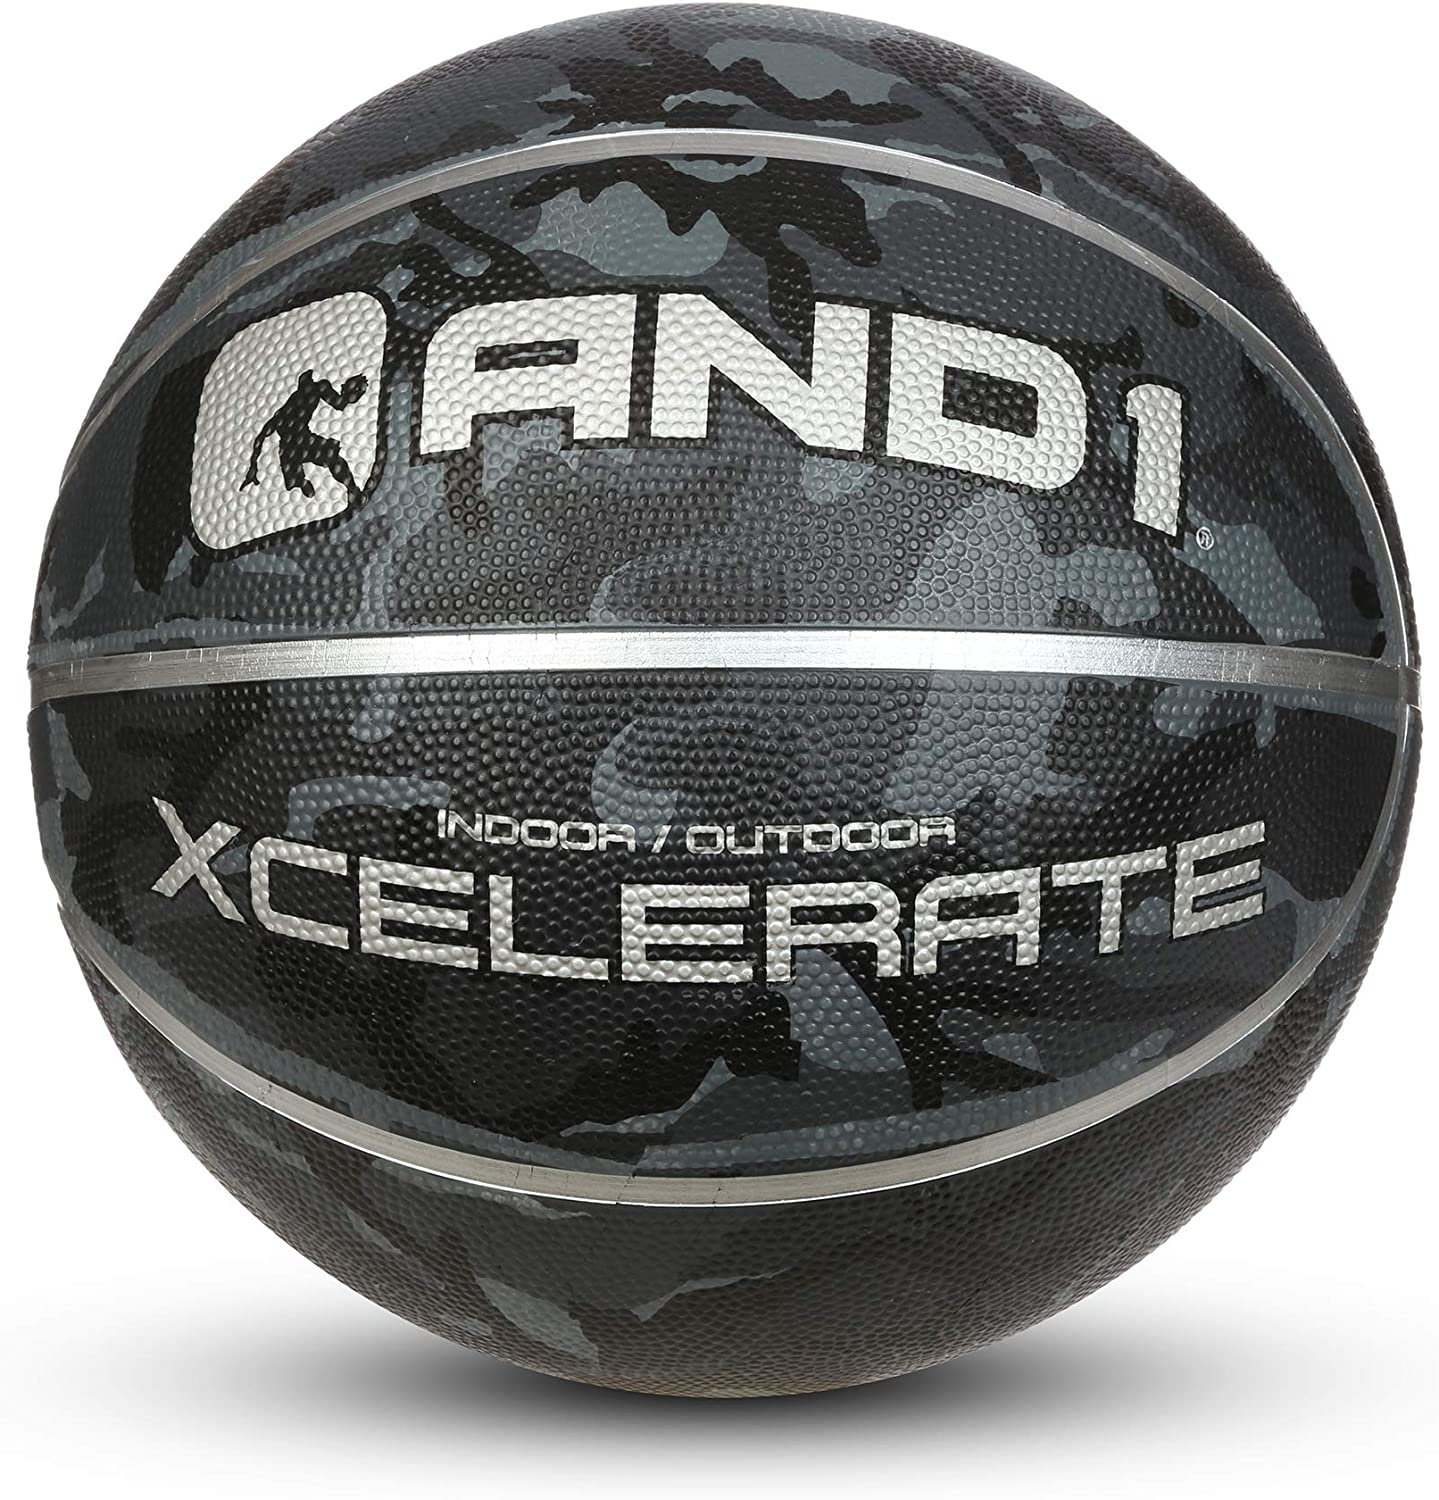 """AND1 Xcelerate Rubber Basketball: Game Ready, Regulation Size 7 (29.5"""") Streetball, Made for Indoor/Outdoor Basketball Games- Black Camo"""